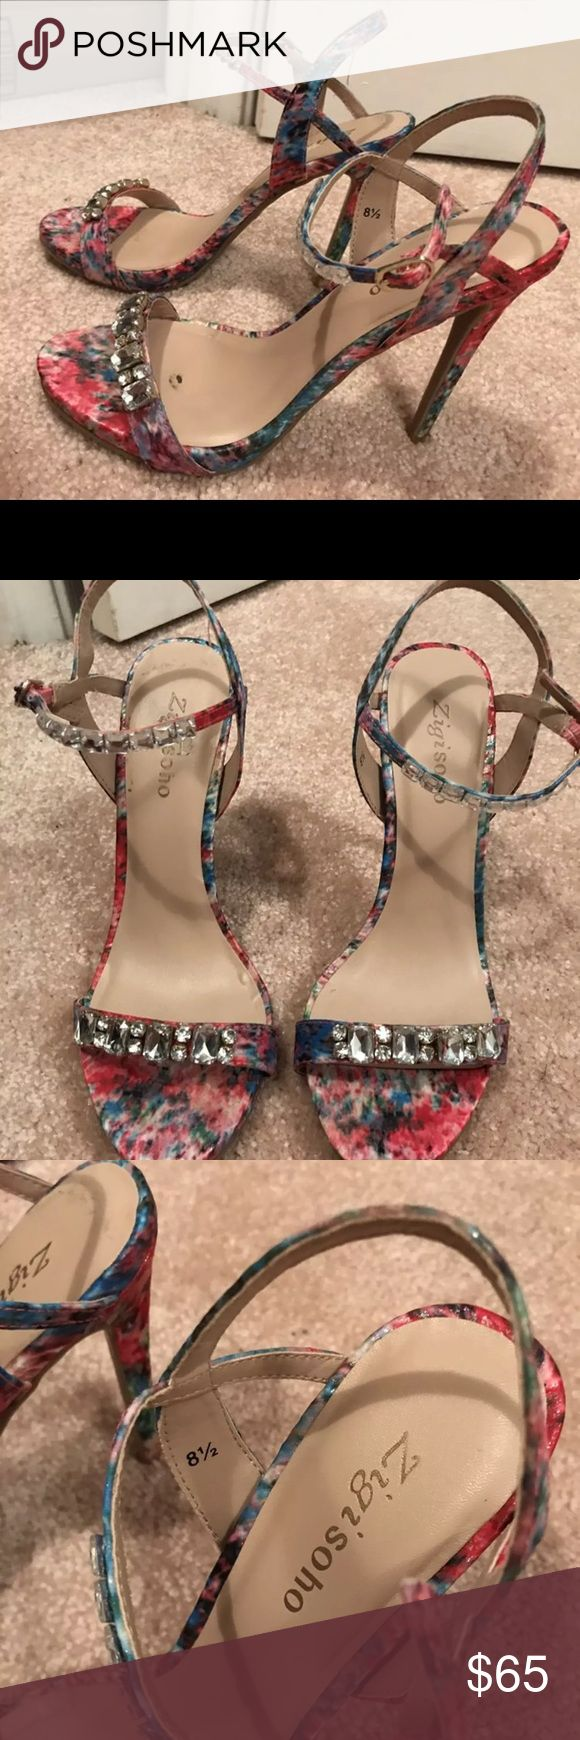 Zigisoho floral strappy heels I love these shoes but I hardly wear them and need the space. I've only worn them two times for about fifteen minutes each. Awesome condition. Zigi Soho Shoes Heels